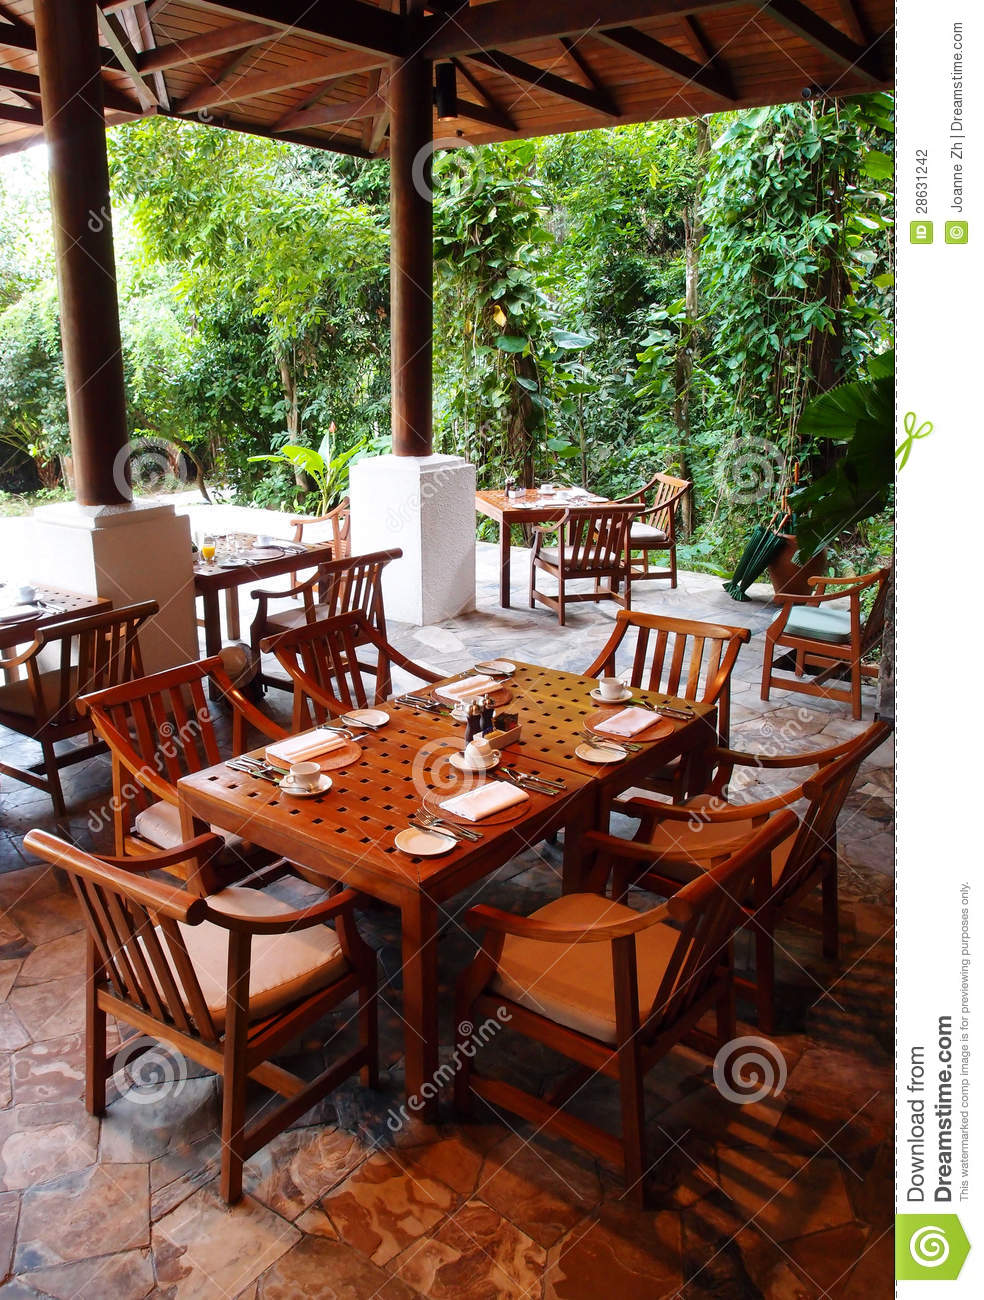 Outdoor Dining Restaurant, Nature Surroundings Stock Photography ...